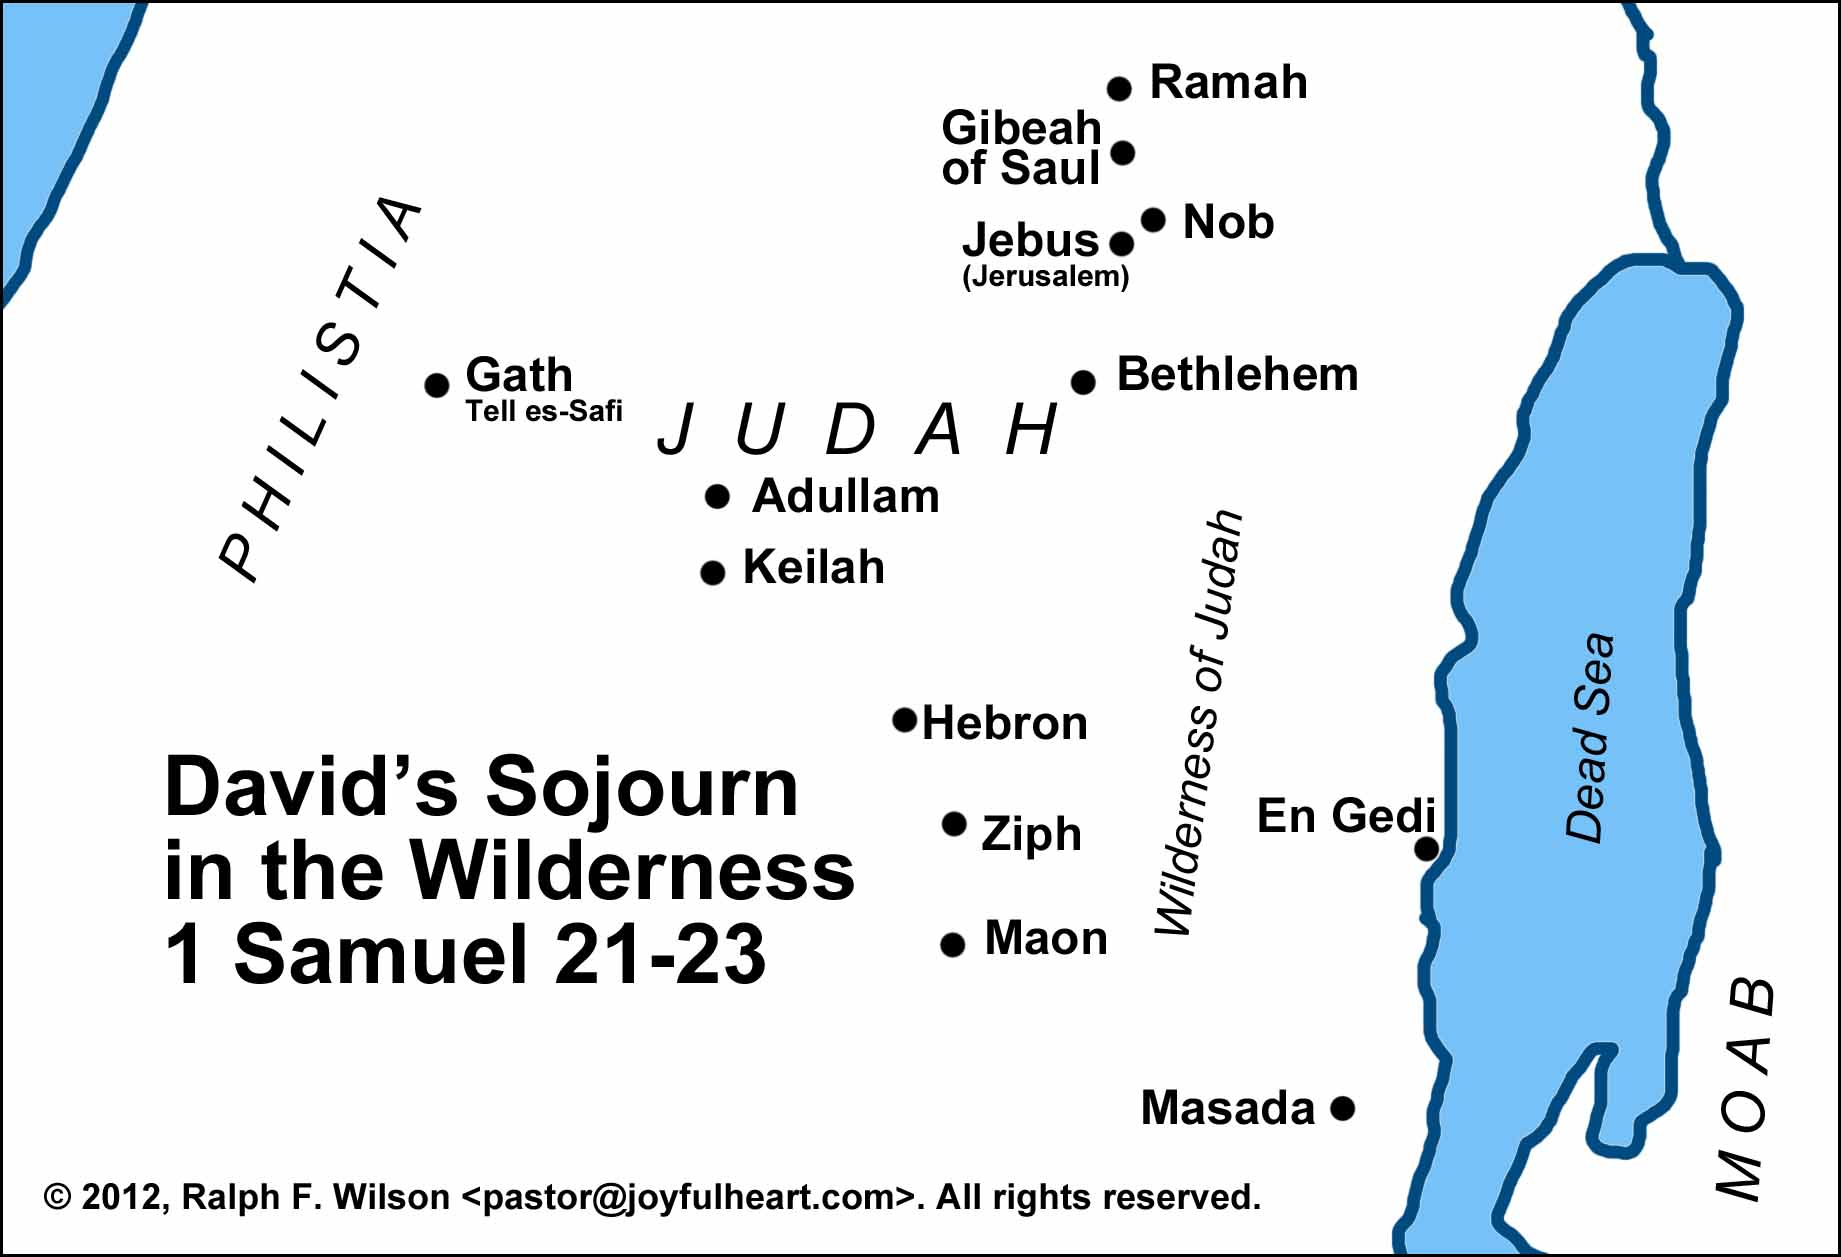 Life Of David Maps And Graphics